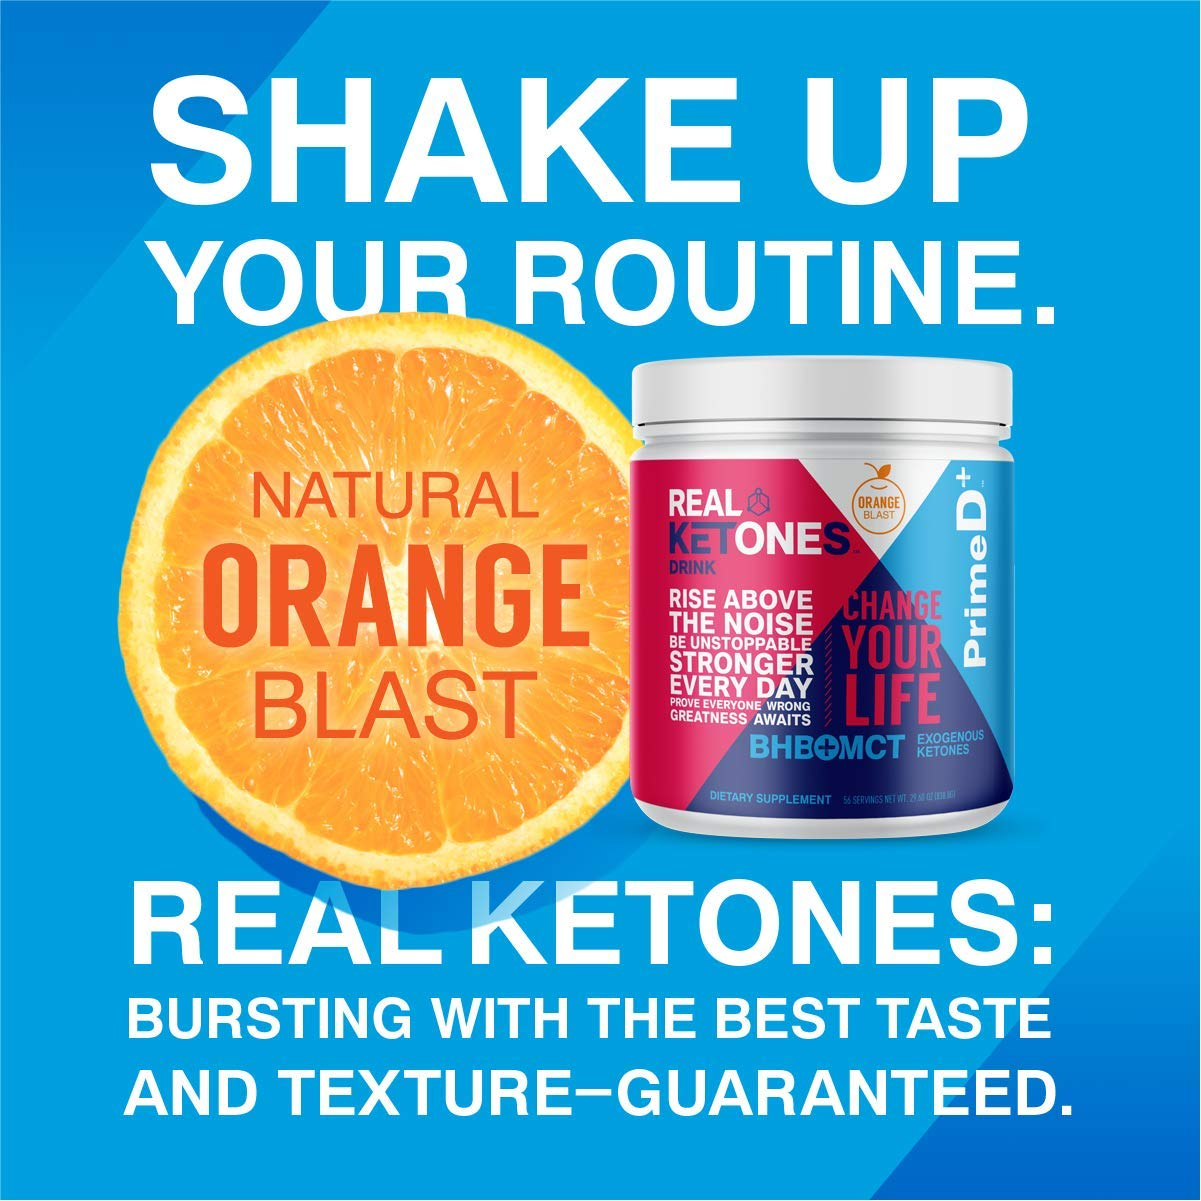 Real Ketones Prime D+ BHB (Beta-Hydroxybuterate) and MCT Exogenous Ketone Powder Supports Ketogenic Diet, Energy Boost, Mental Clarity (Orange Blast) (56 Serving) by KEGENIX (Image #8)